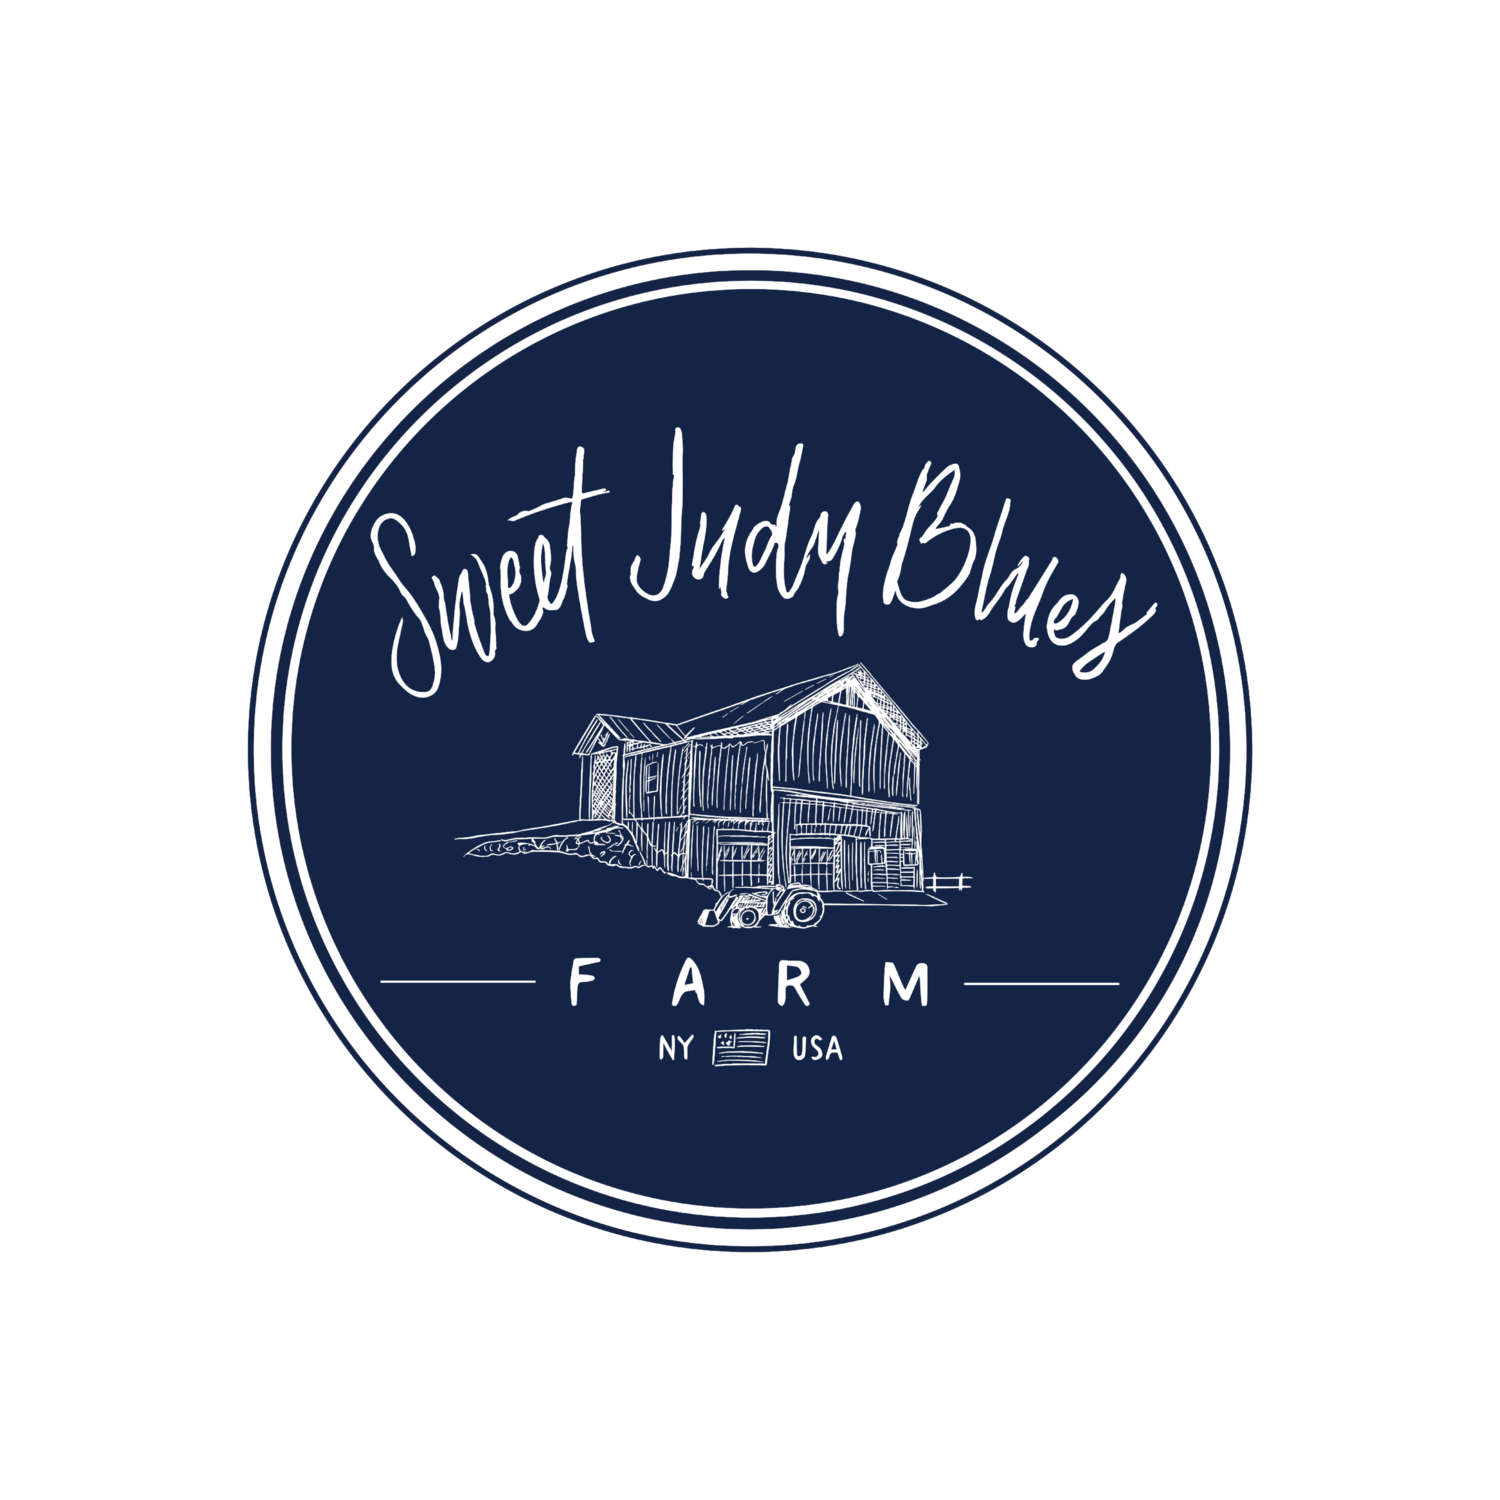 Sweet Judy Blues Farm